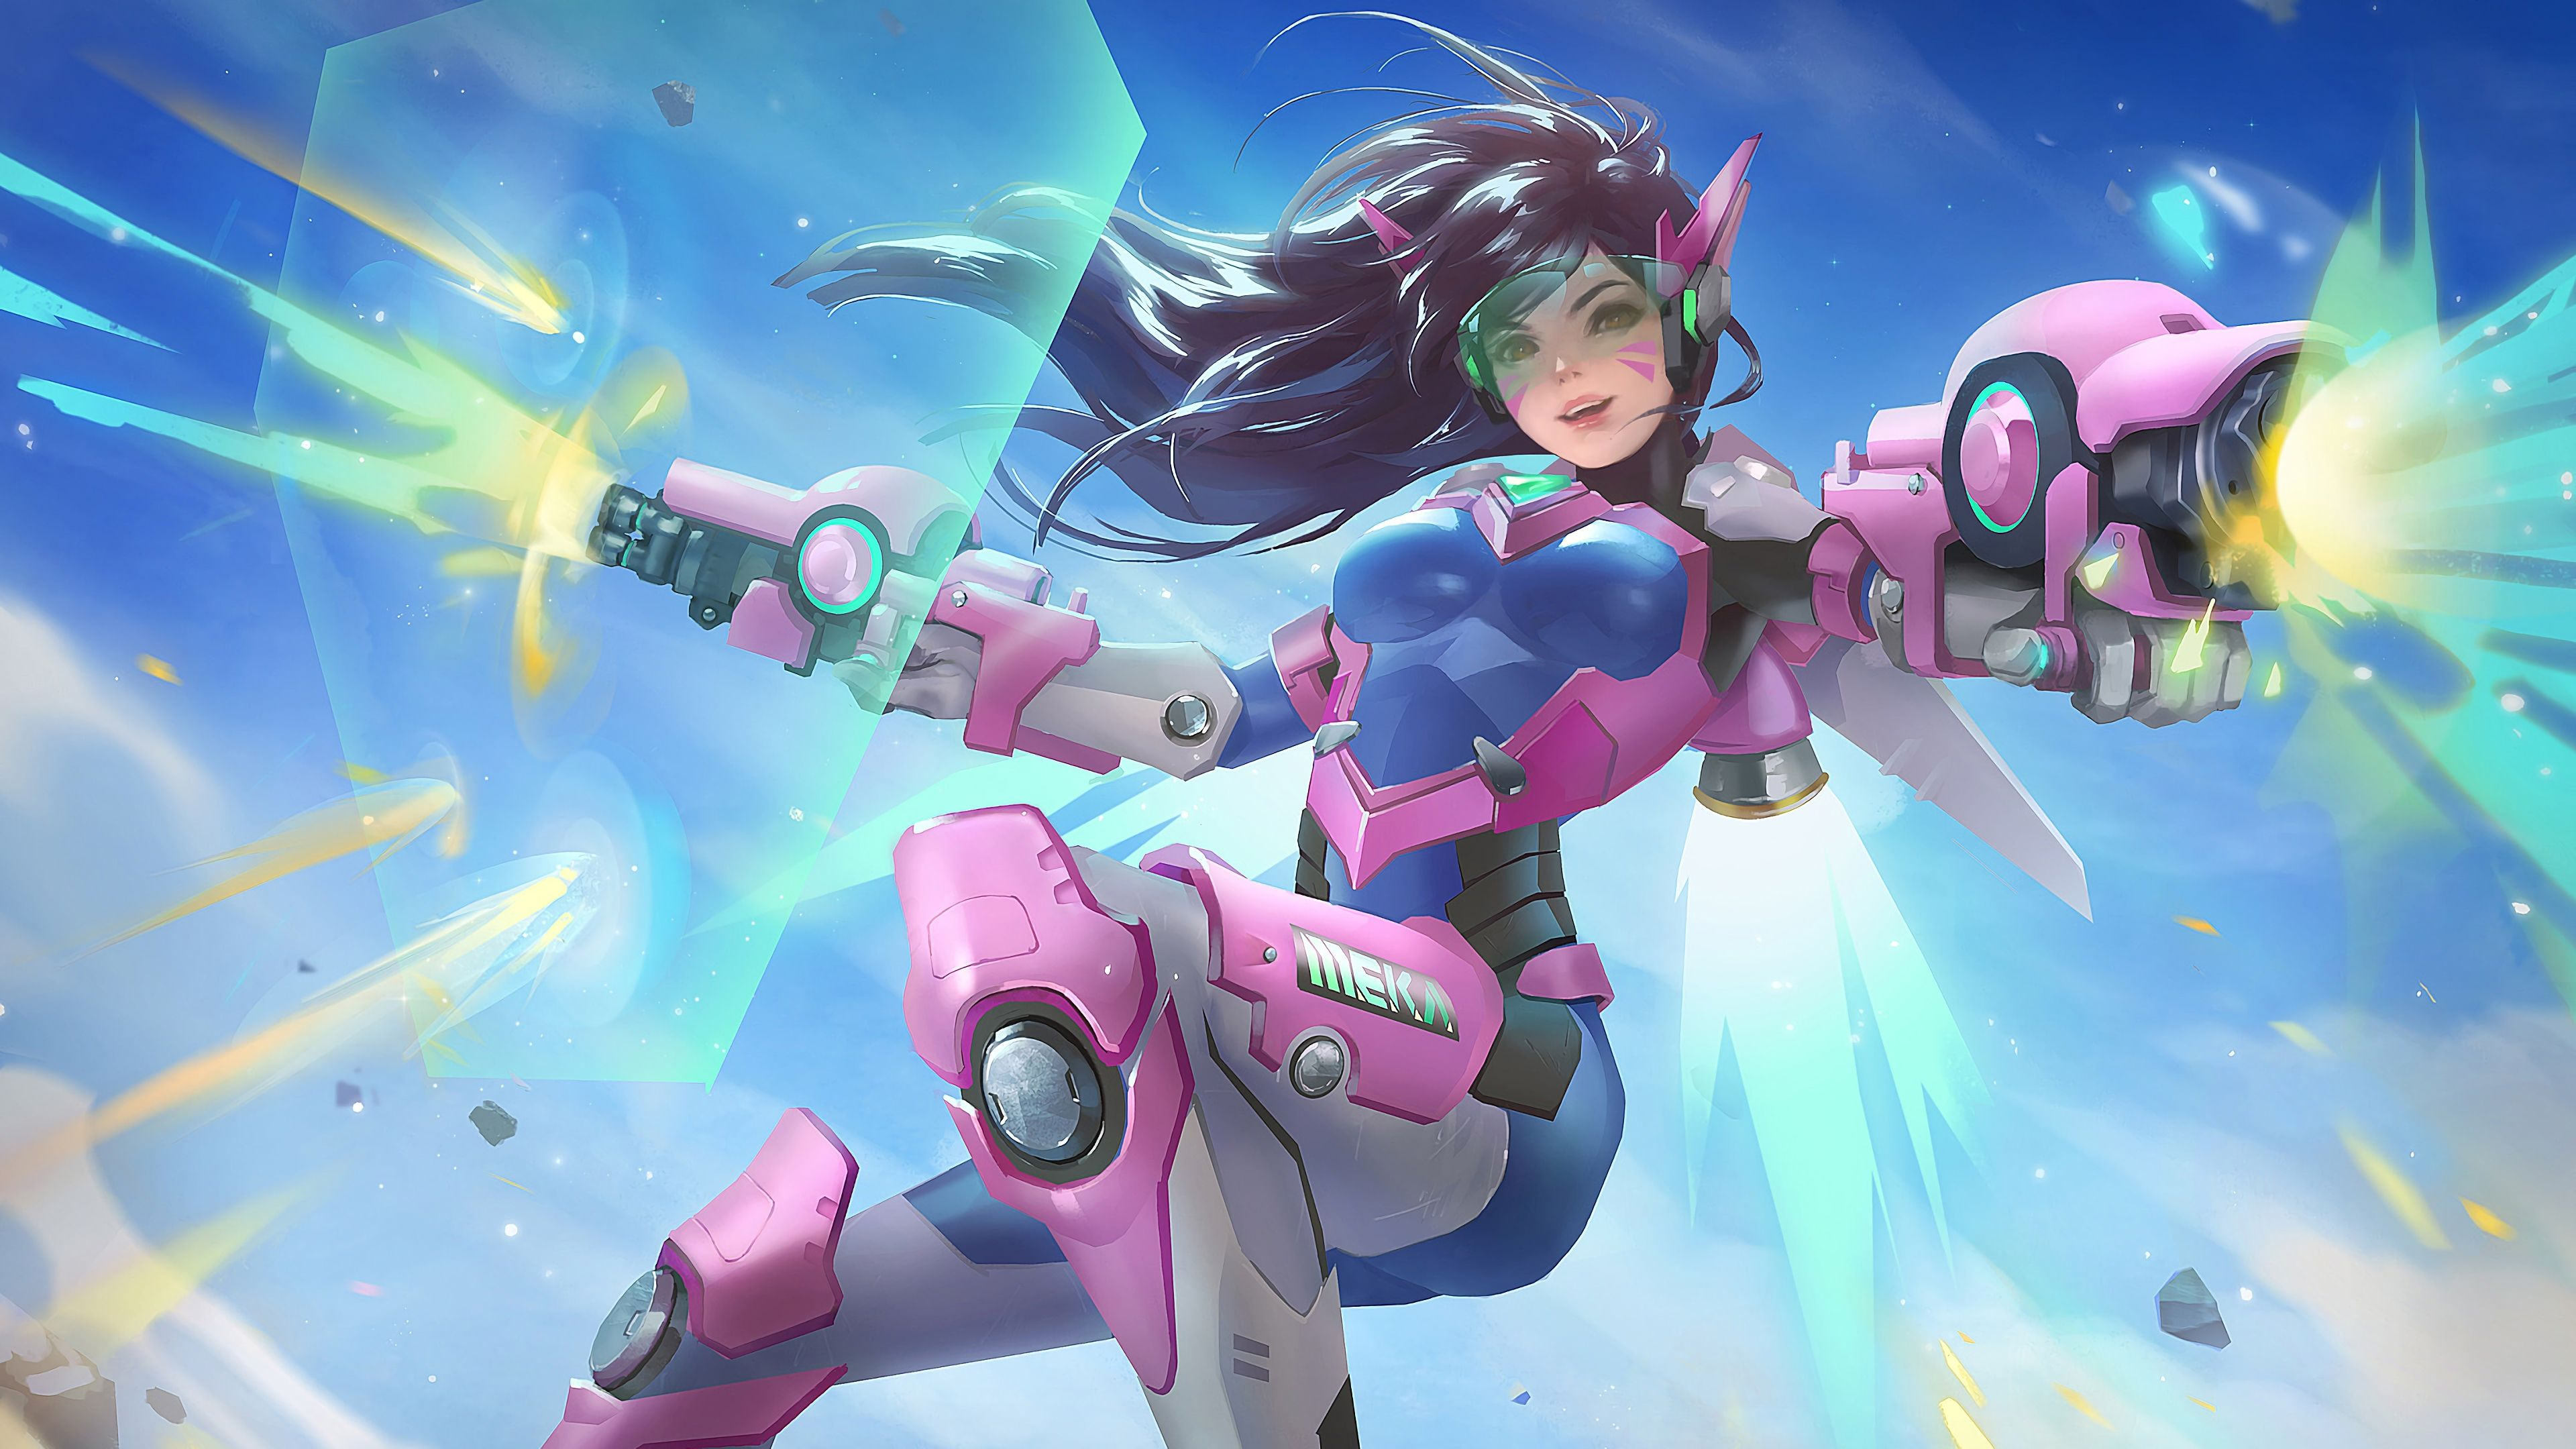 D Va Overwatch 4k 17909 Overwatch Wallpapers Overwatch Overwatch Fan Art